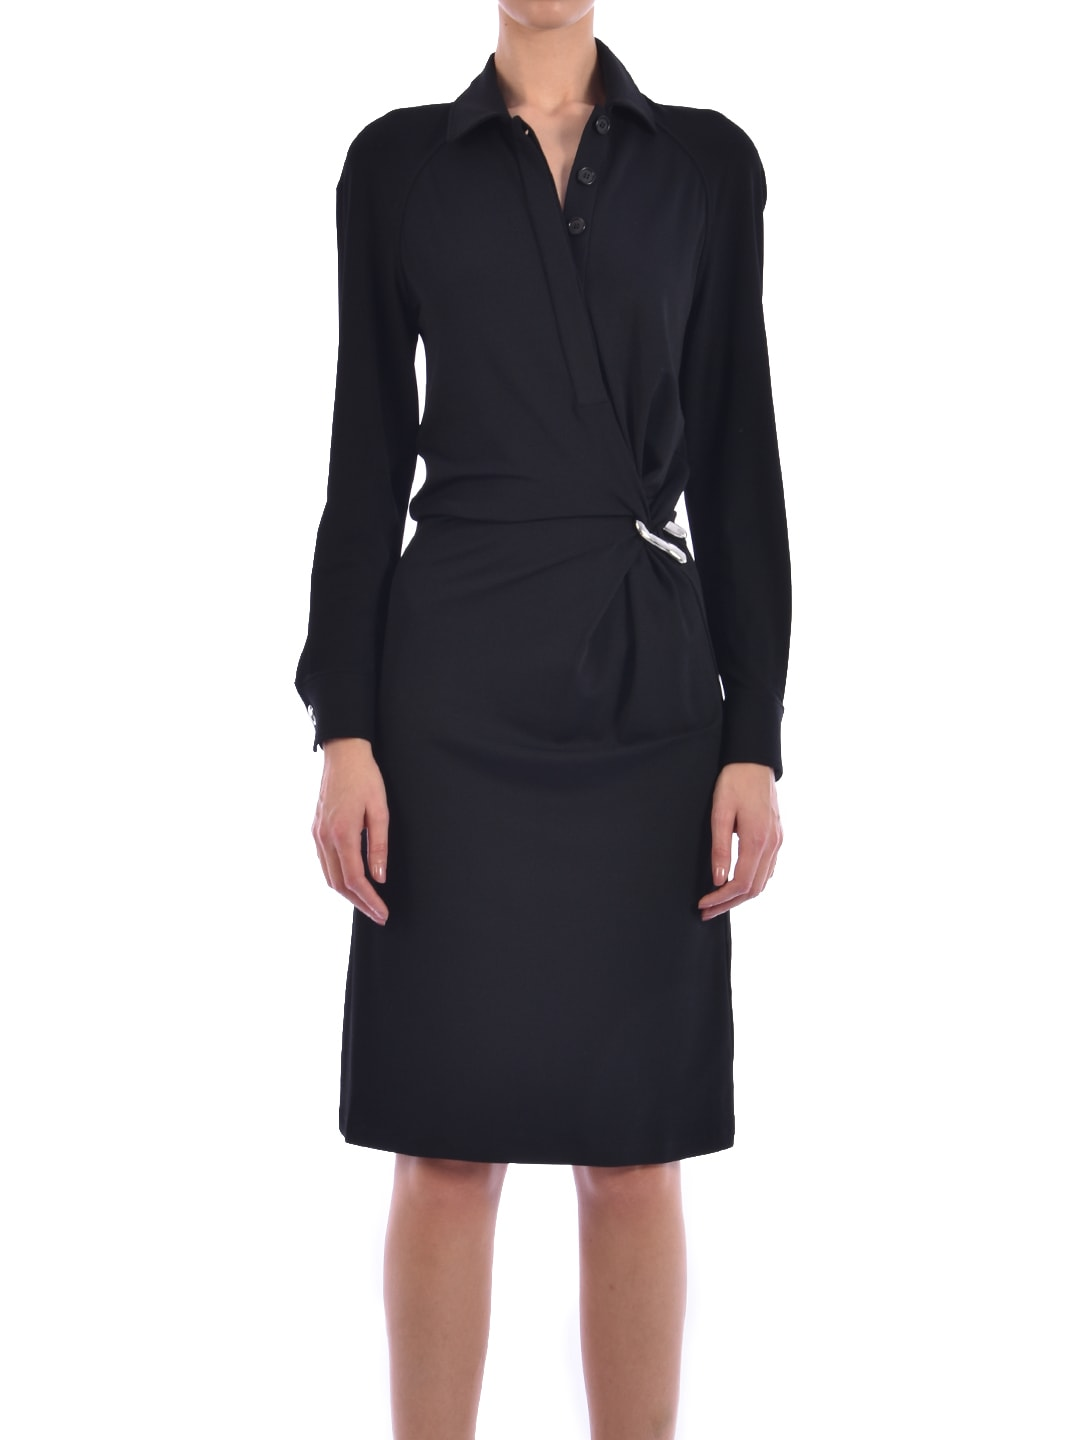 Buy Bottega Veneta Jersey Dress Black online, shop Bottega Veneta with free shipping